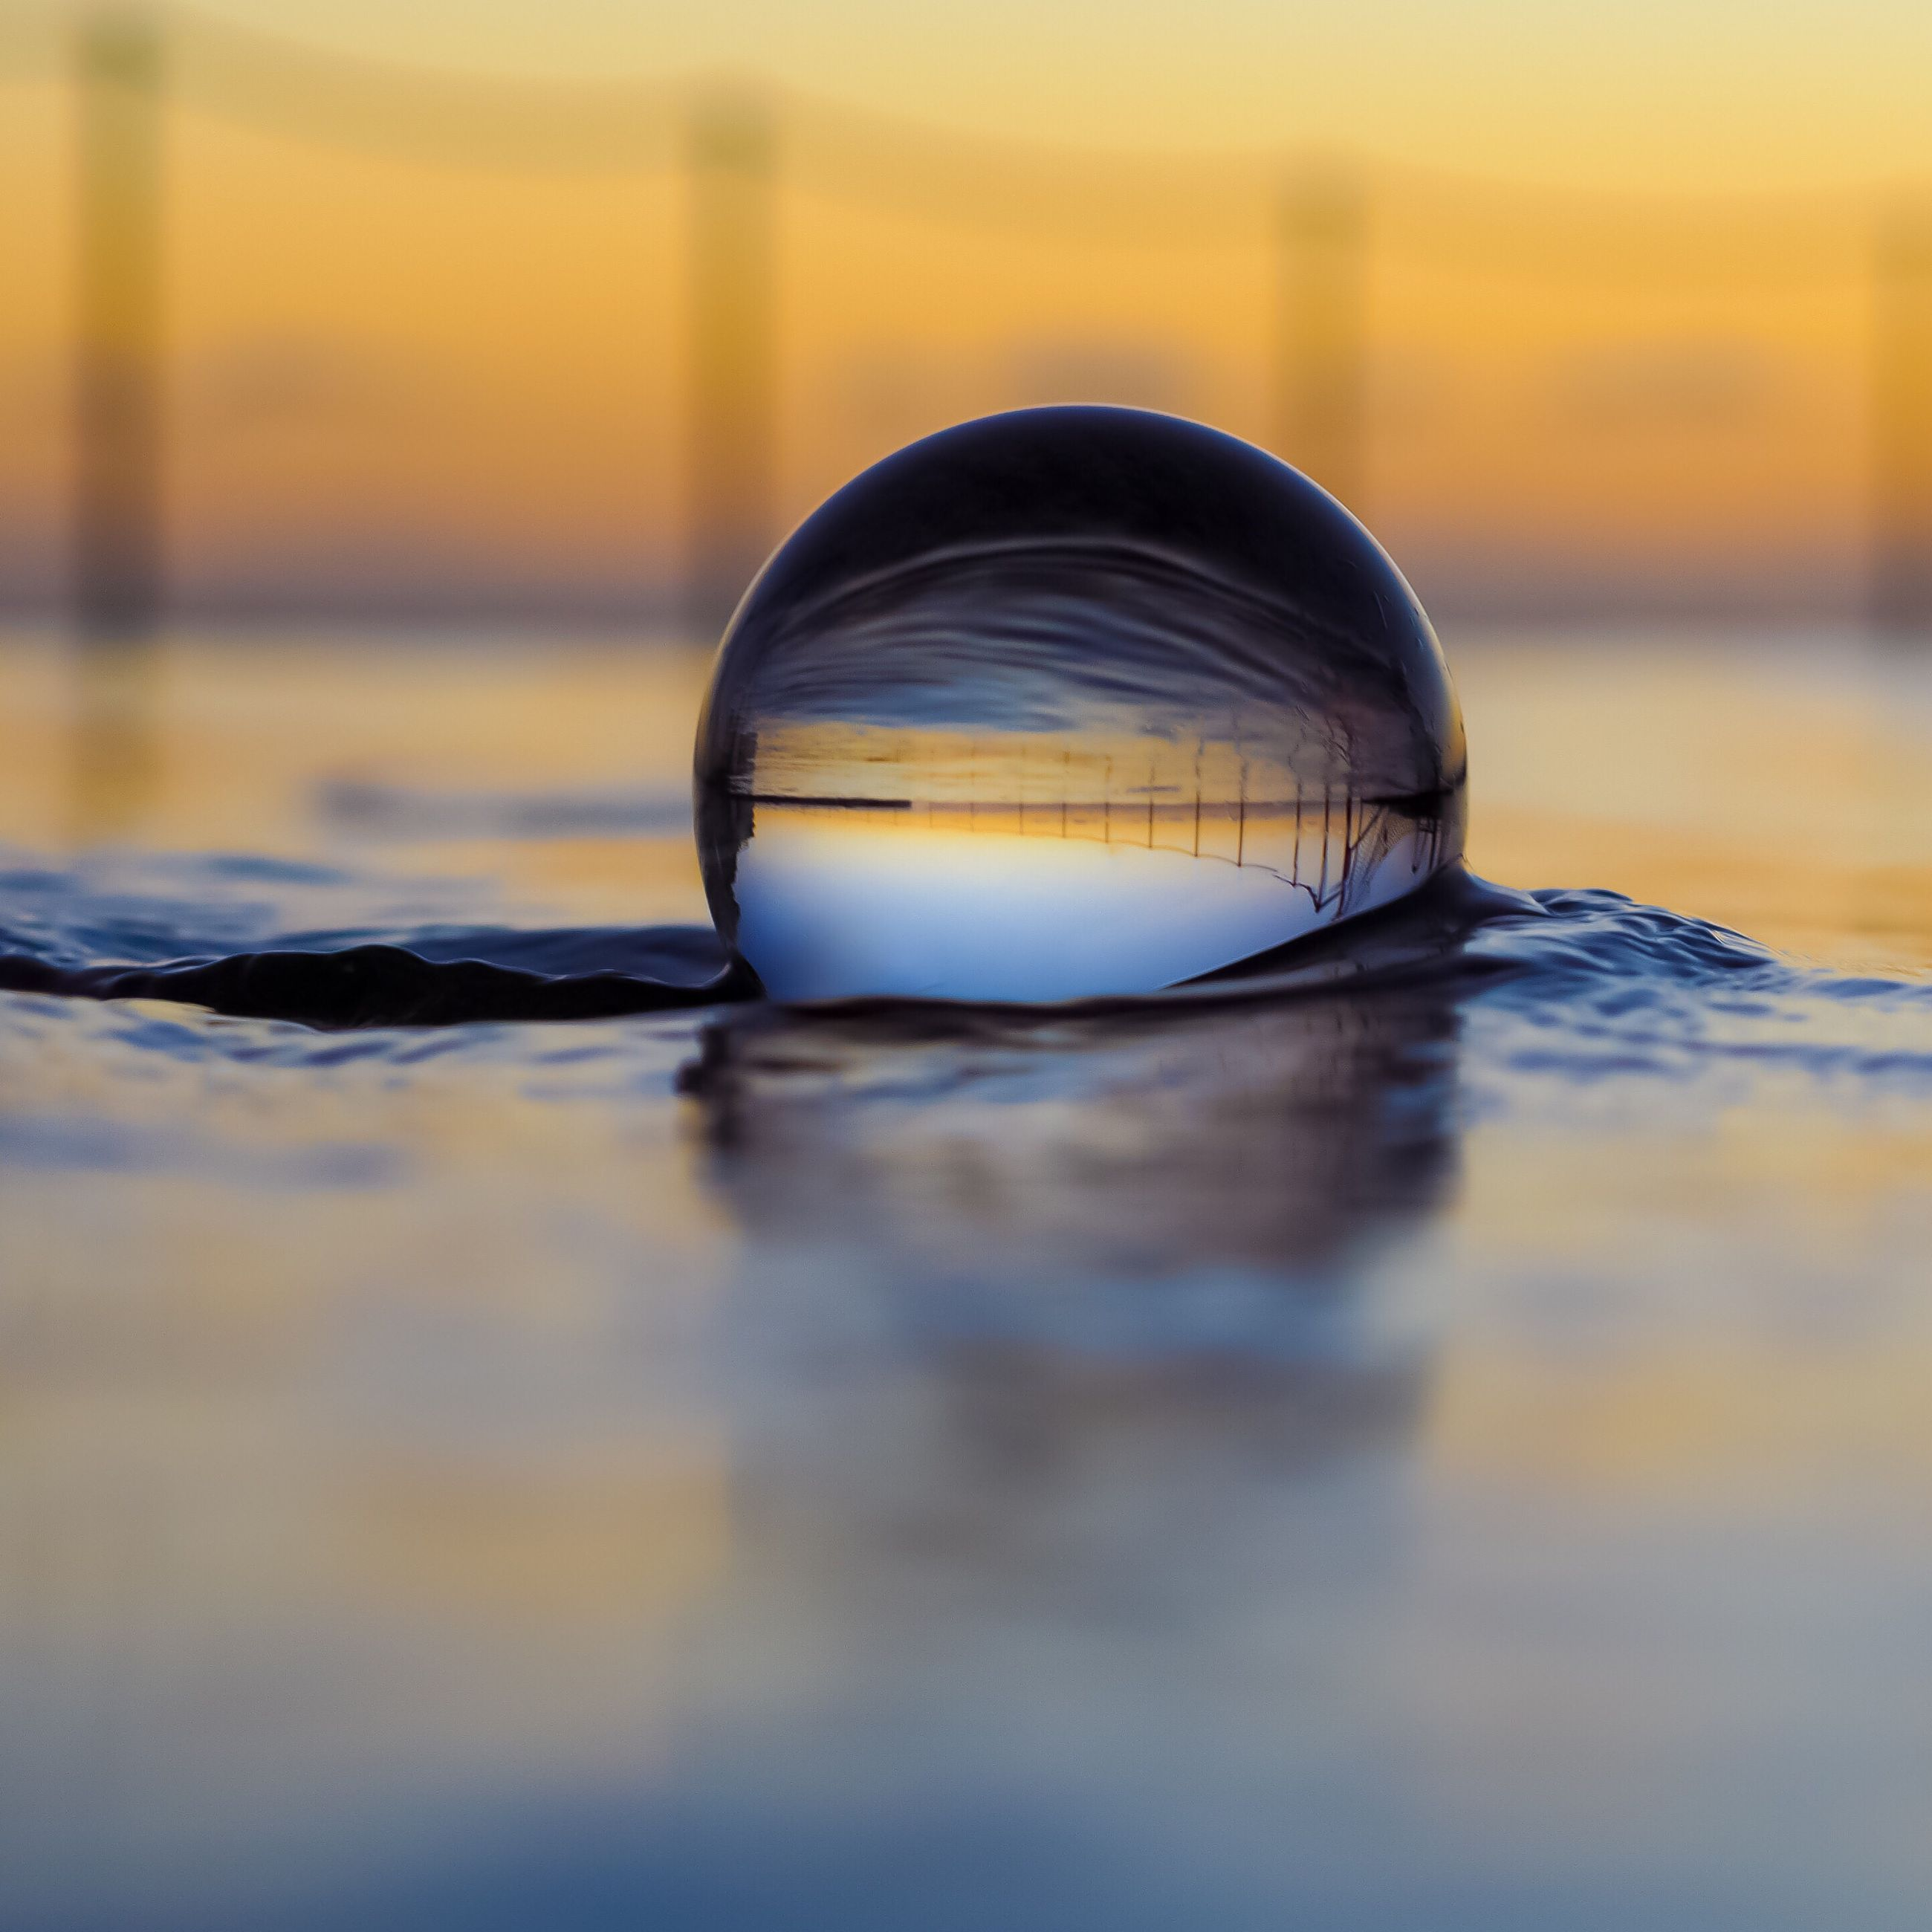 sunset, reflection, water, sphere, sky, focus on foreground, close-up, orange color, sea, beauty in nature, tranquil scene, scenics, nature, tranquility, circle, outdoors, ball, waterfront, no people, idyllic